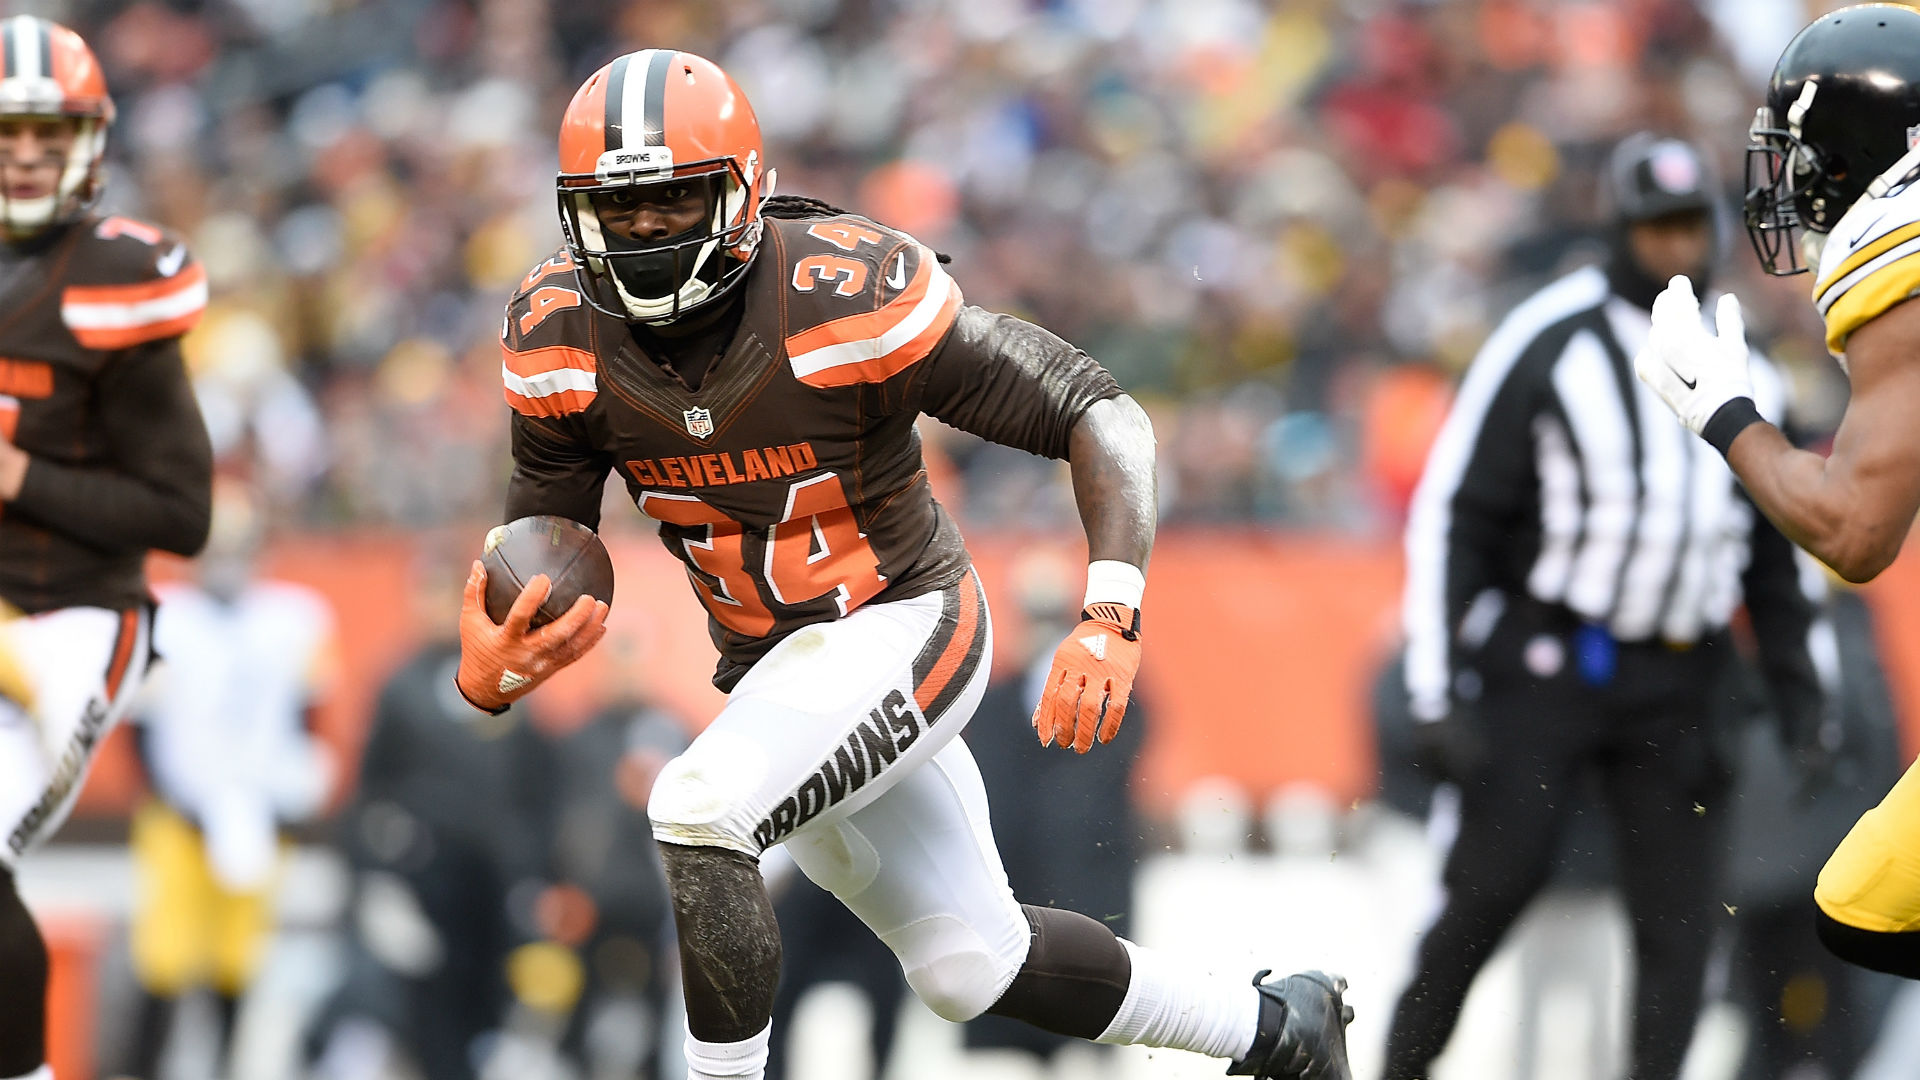 designer fashion 85659 119fc Browns RB Isaiah Crowell shares, deletes graphic image ...